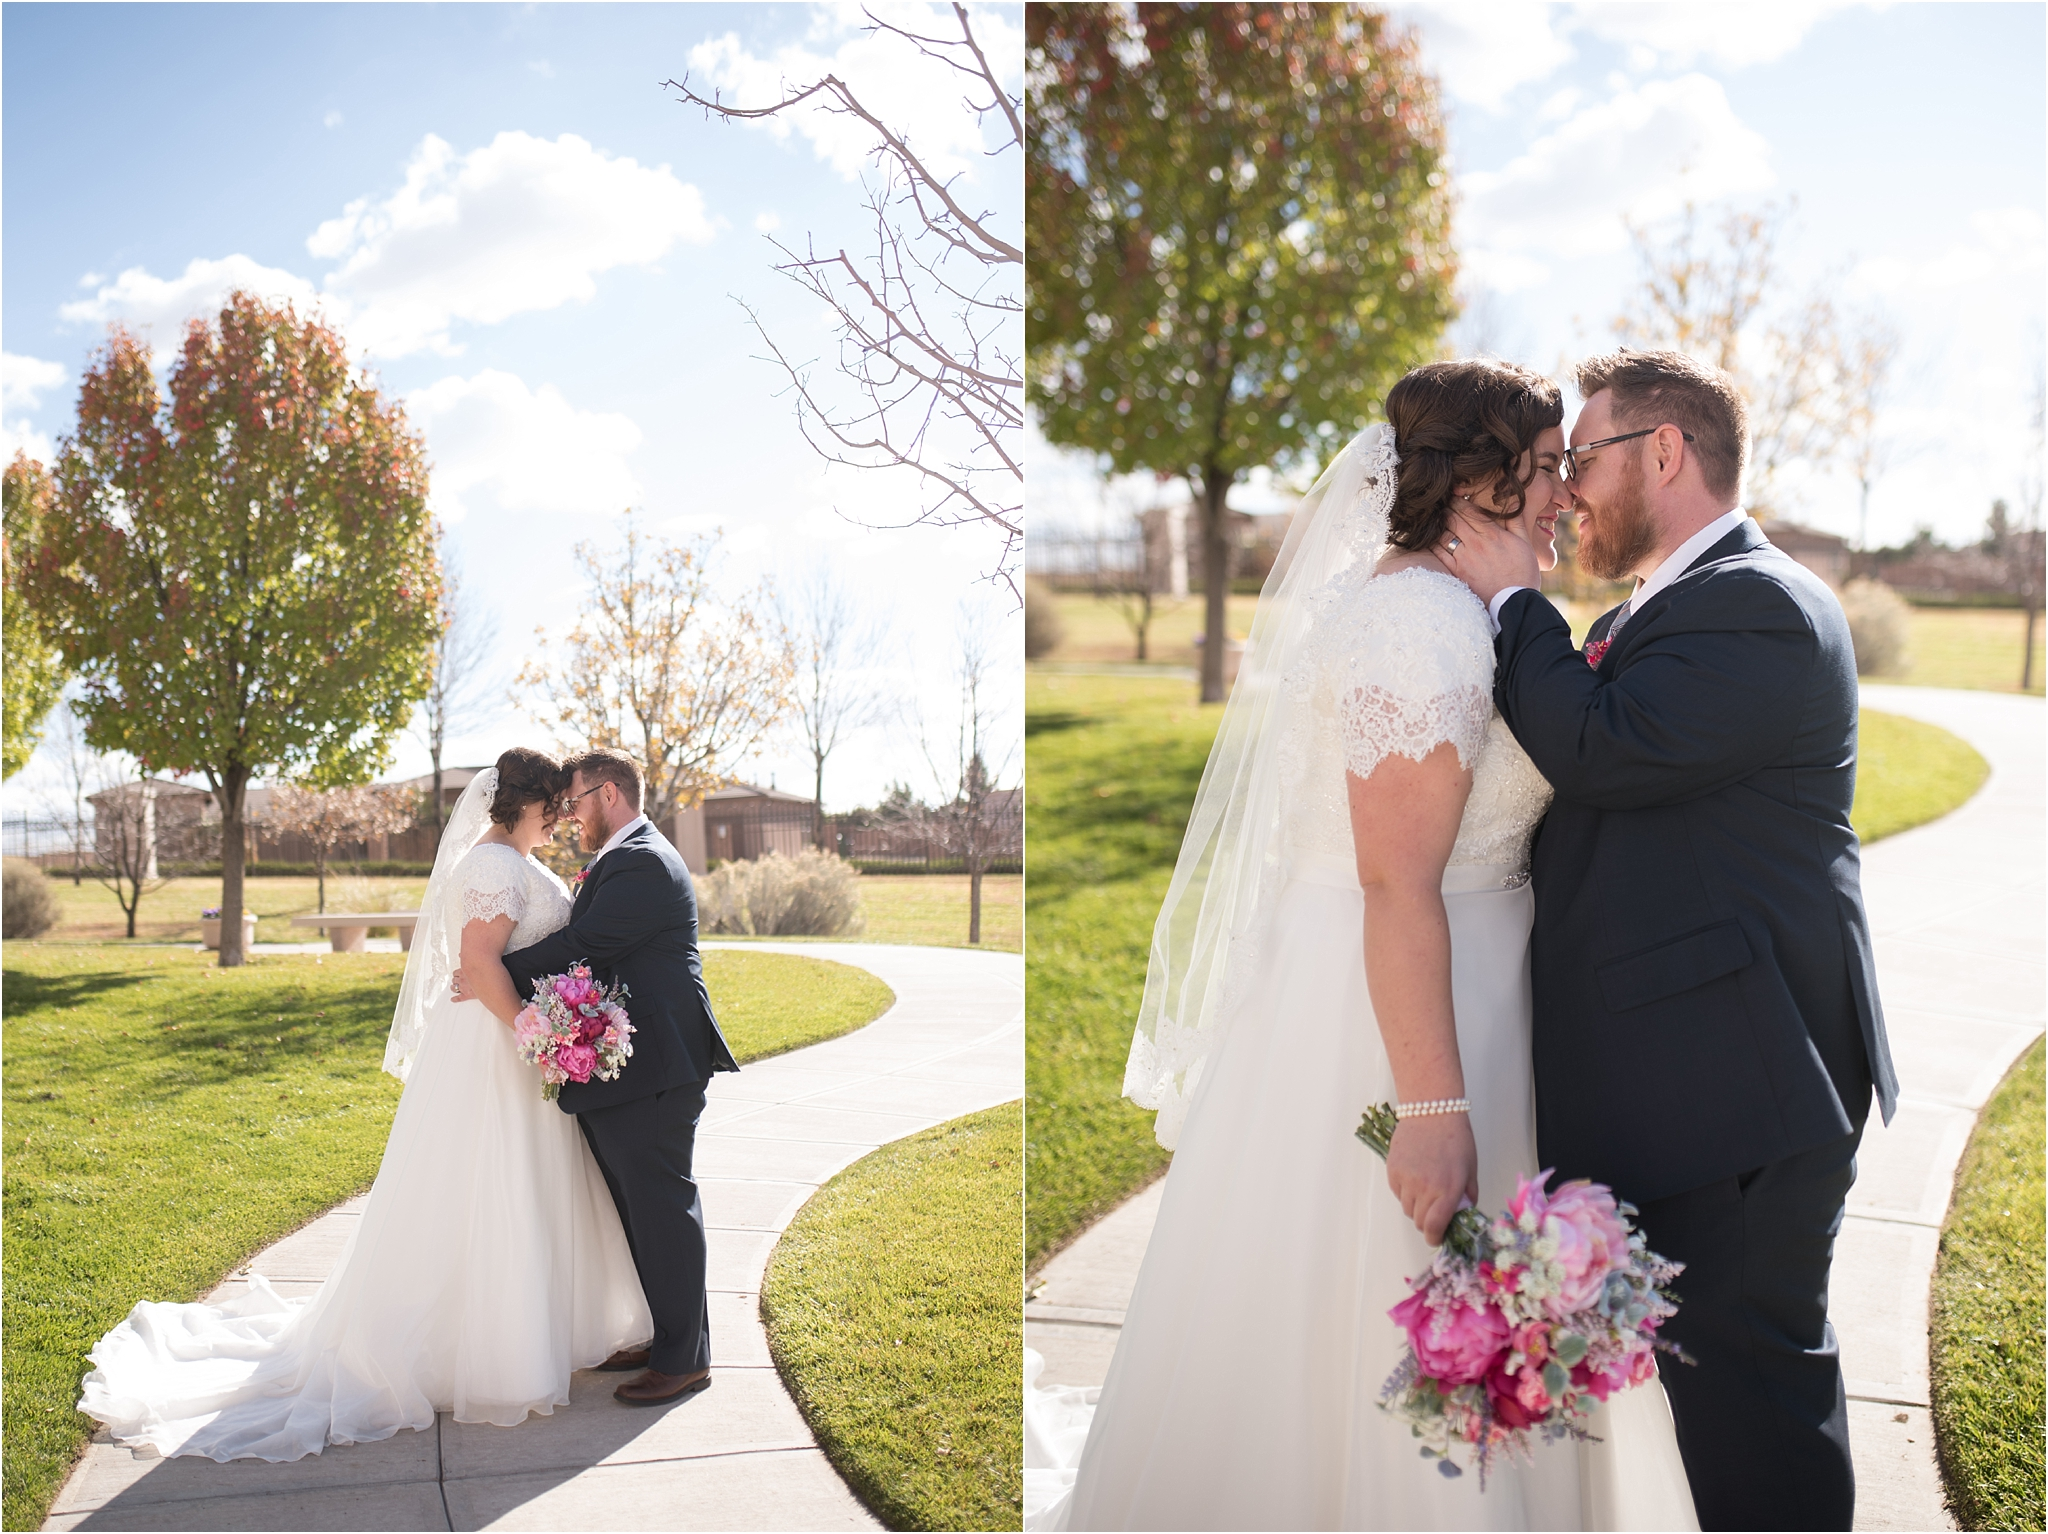 kayla kitts photography - albuquerque wedding photographer - hairpins and scissors - a cake odyssey - new mexico wedding photographer_0103.jpg